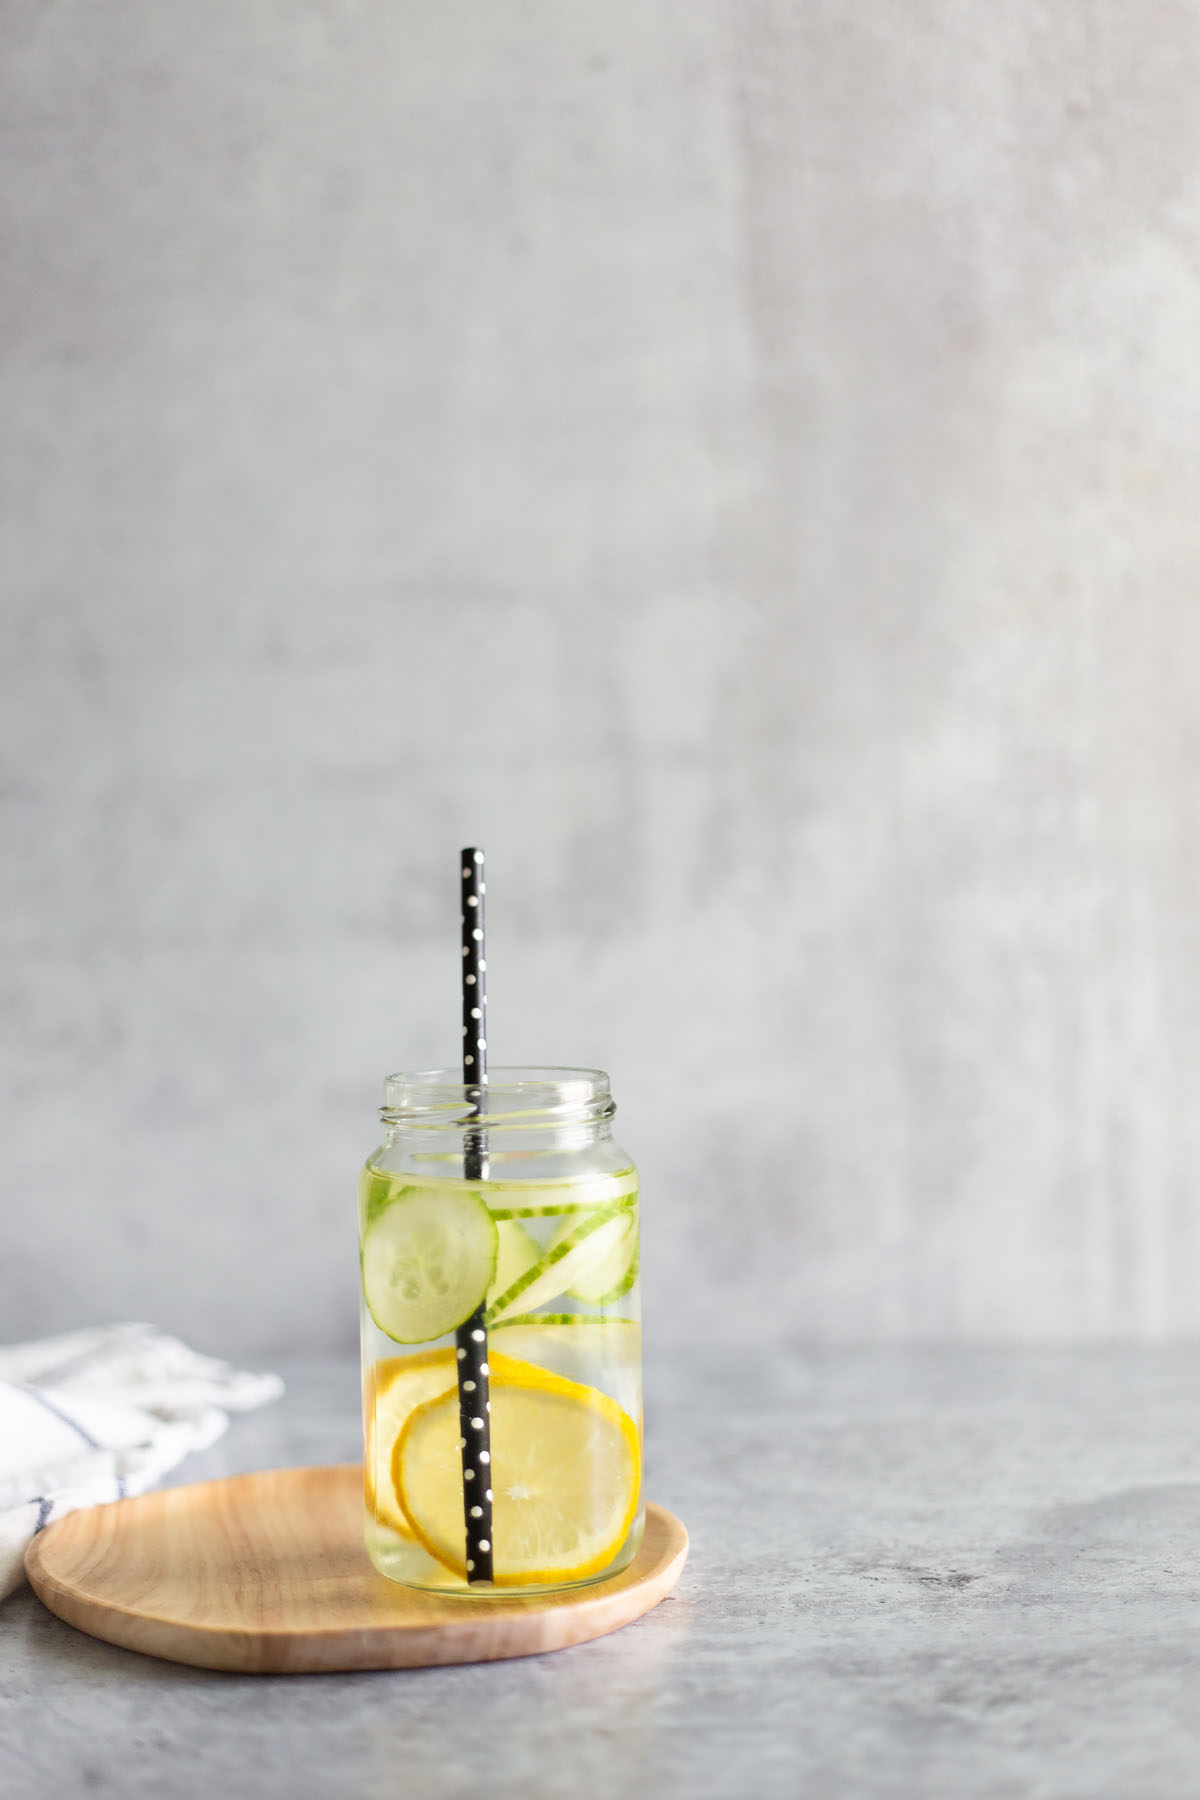 cucumbers and lemons in a jar with water and a straw